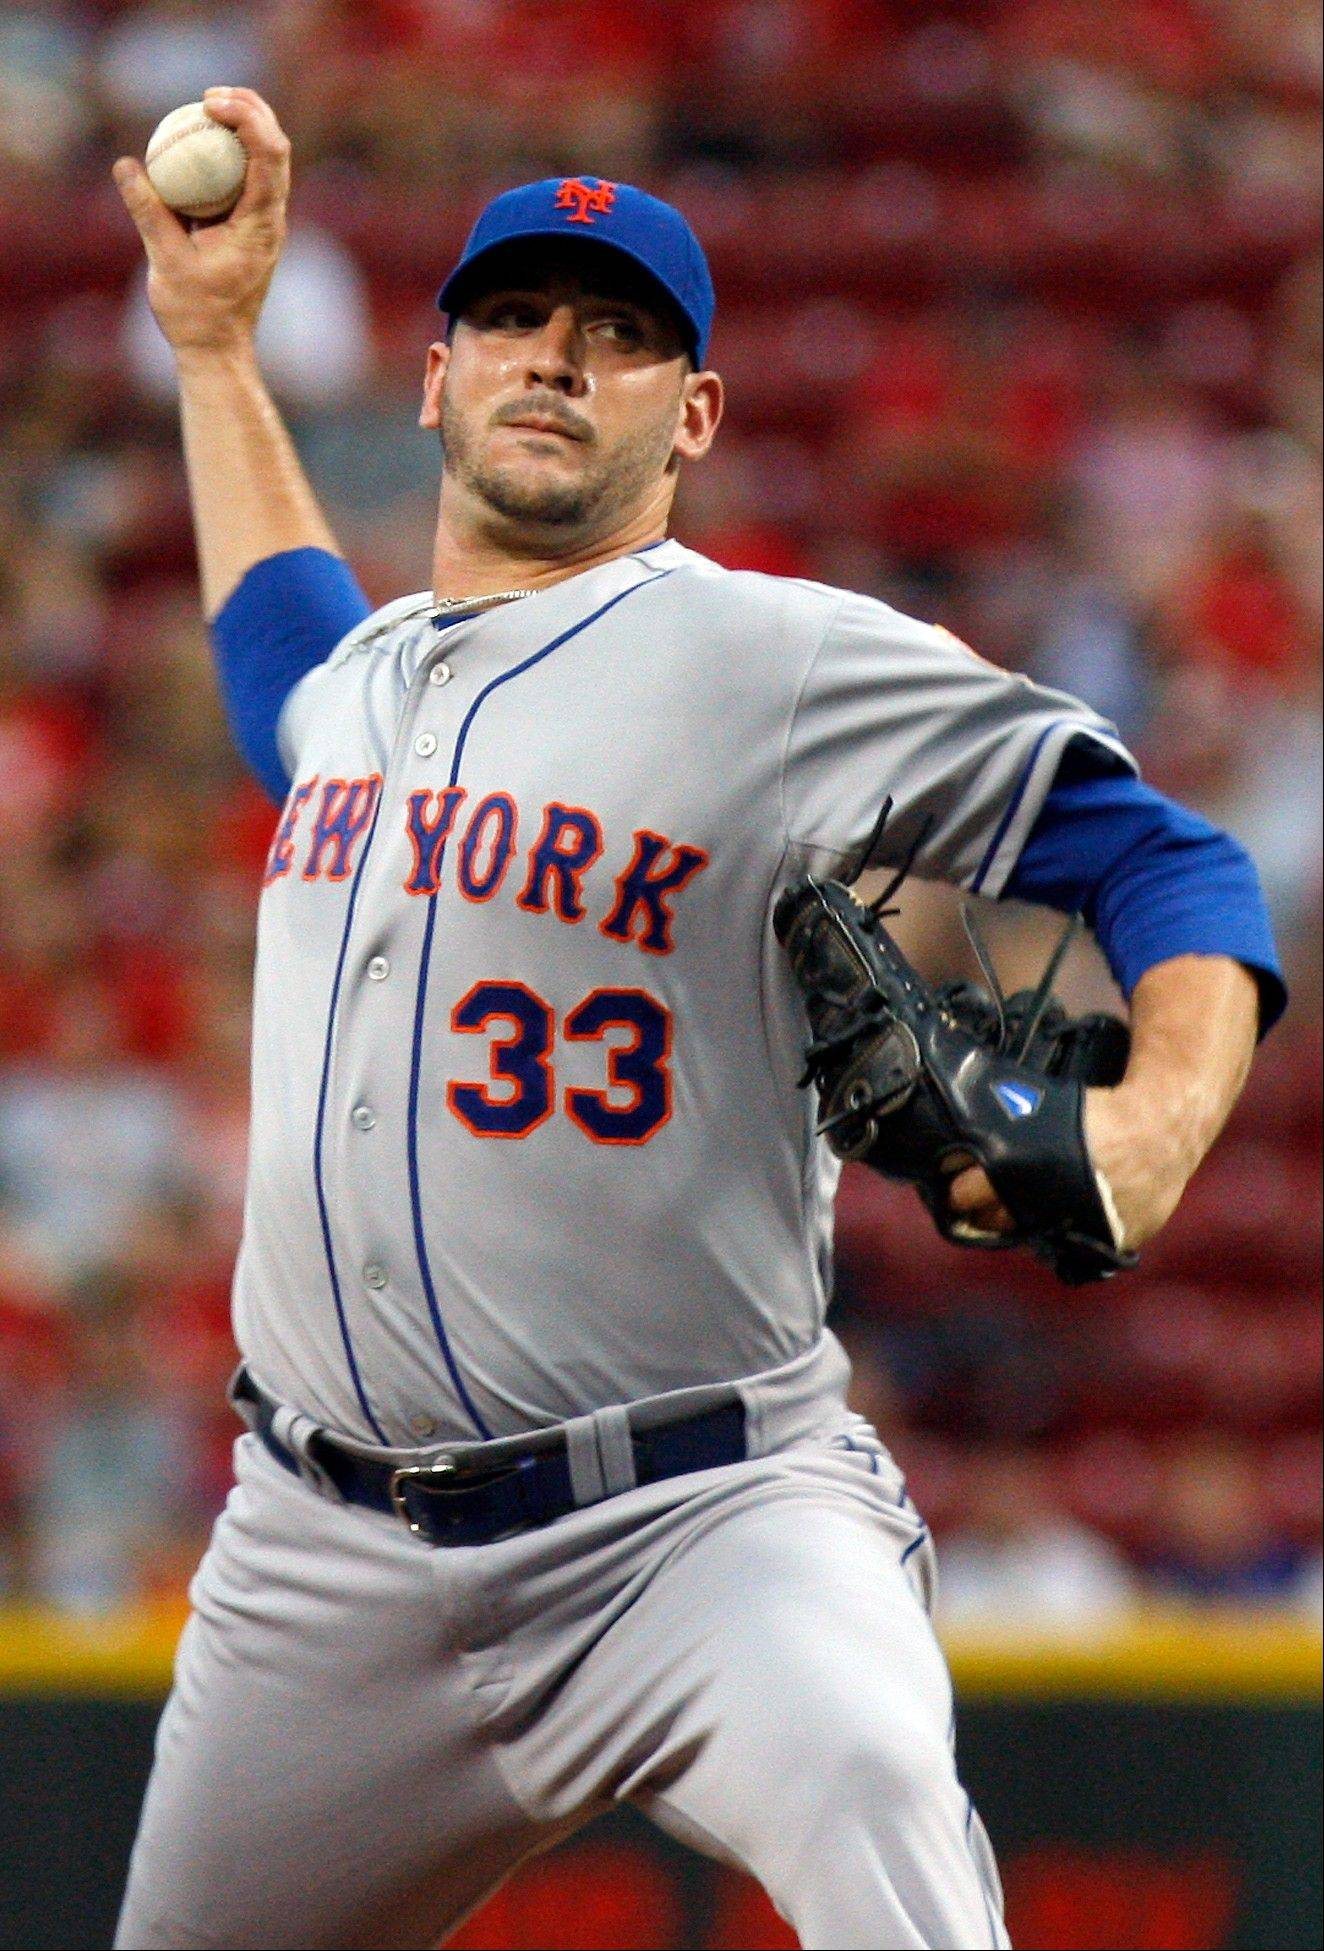 Mets starting pitcher Matt Harvey allowed one run and four hits in 7 2-3 innings Thursday in a road win over Cincinnati.